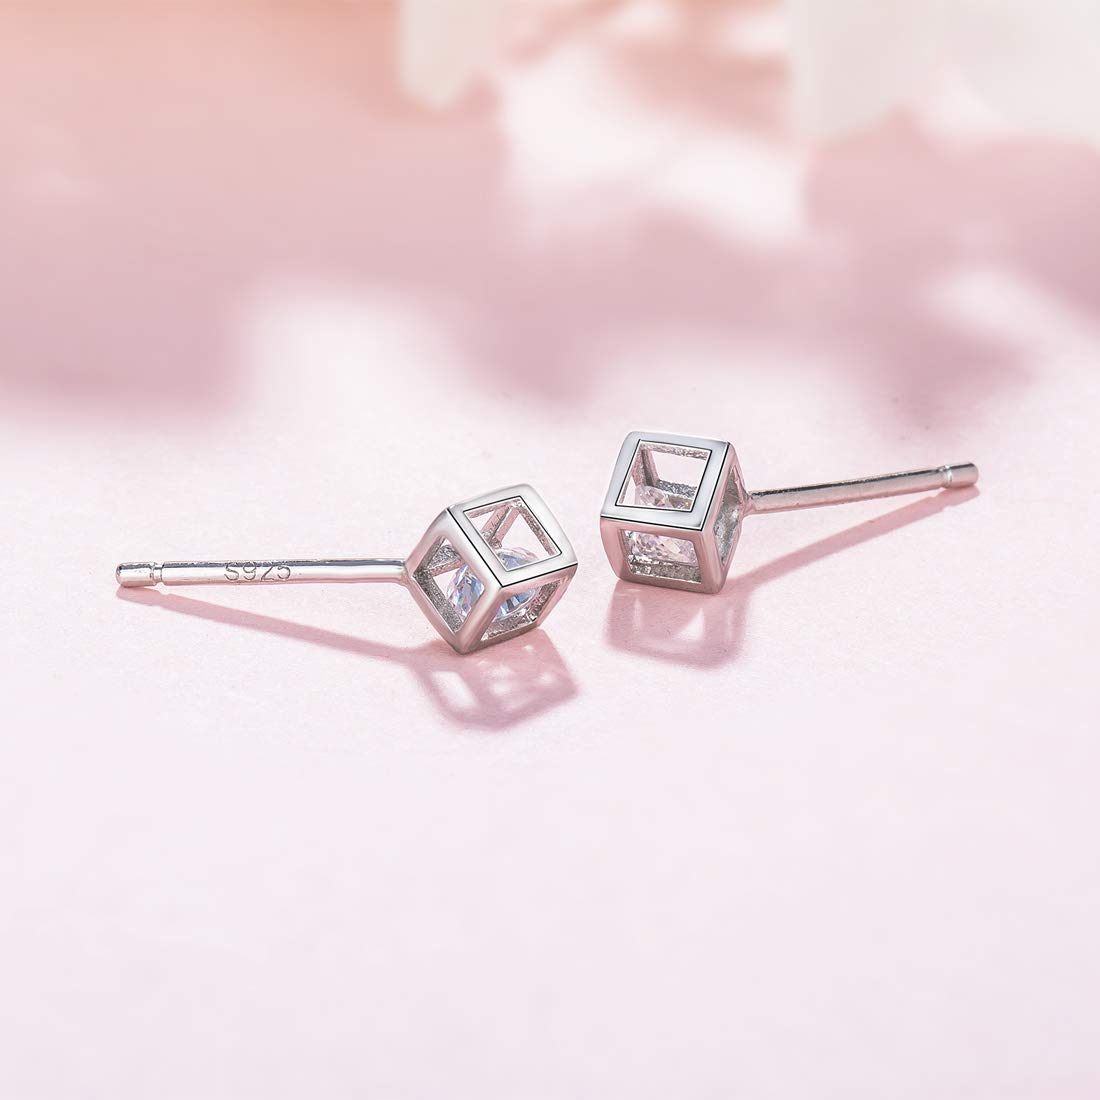 Professional Sale 0.4cm Diamante Silver Plated Stud Earrings 100% High Quality Materials Costume Jewellery Jewellery & Watches